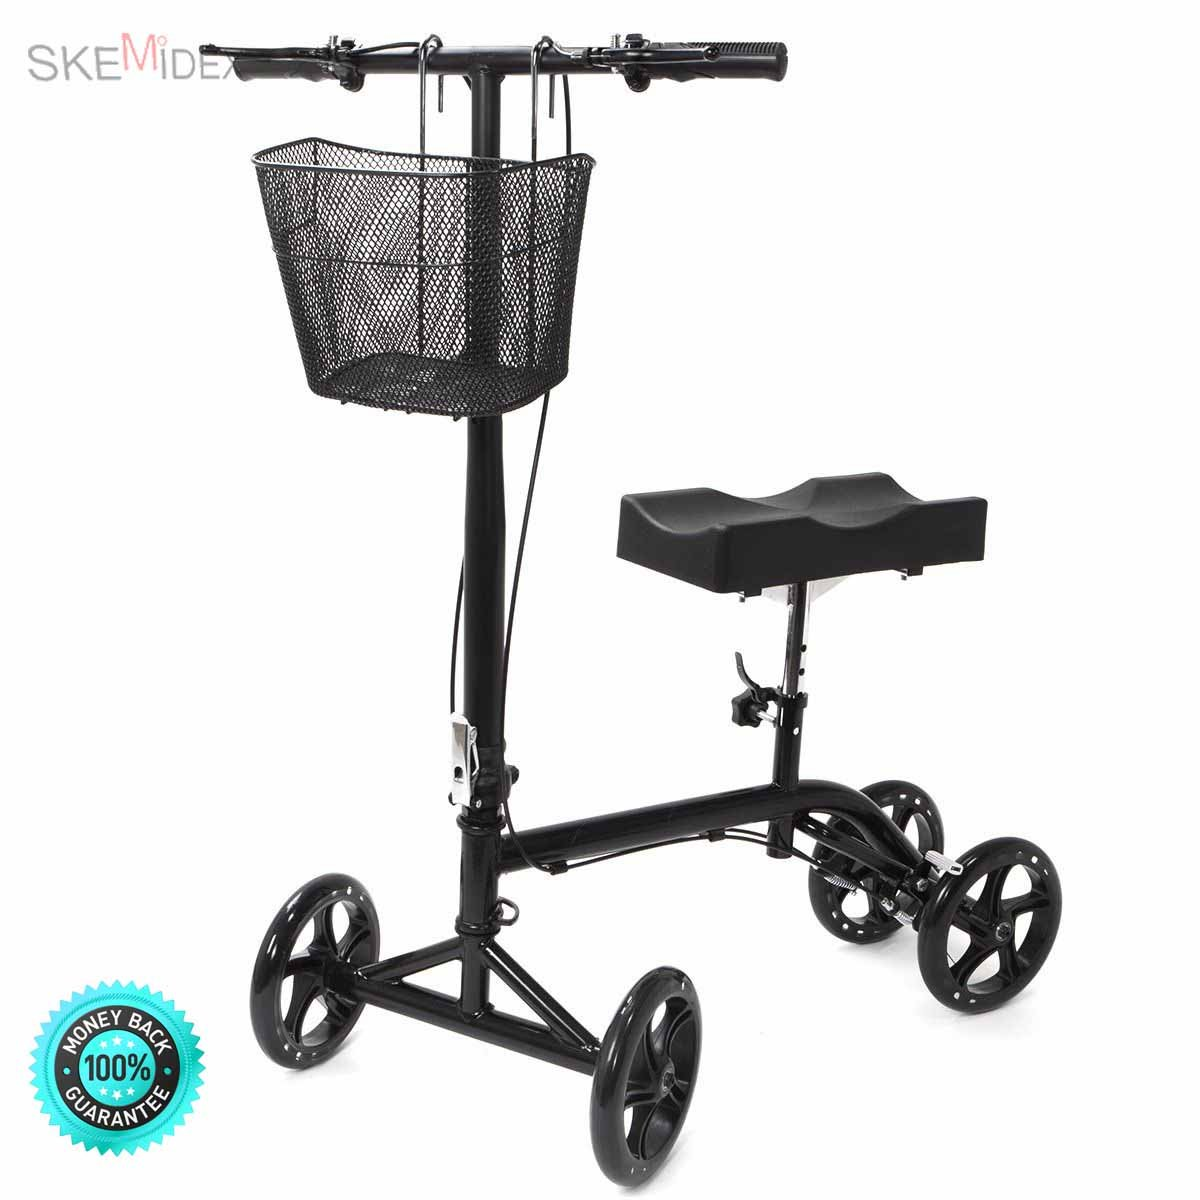 SKEMiDEX--- New Steerable Foldable Knee Walker Scooter Turning Brake Basket Drive Cart Black Material: PU wheel and pad, steel frame • Color: Black • Net weight: 30 lbs • Max weight capacity: 350 lbs.